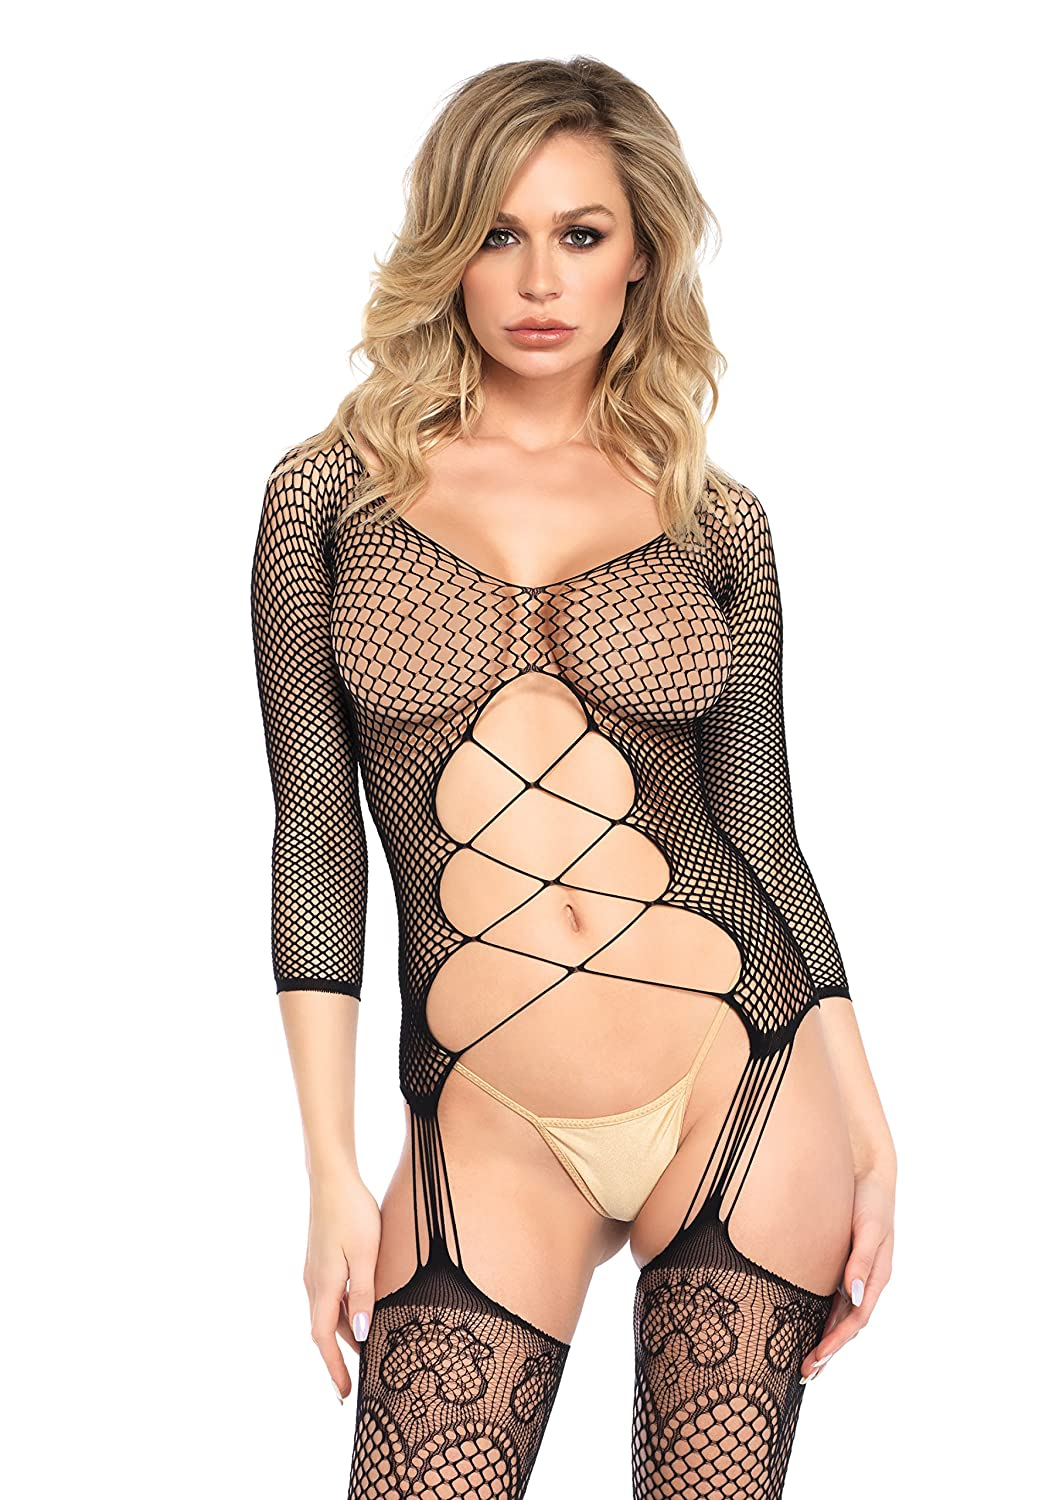 Leg Avenue Women's Industrial Net Long Sleeve Bodystocking with Cut Out Body Black One Size 8912922001